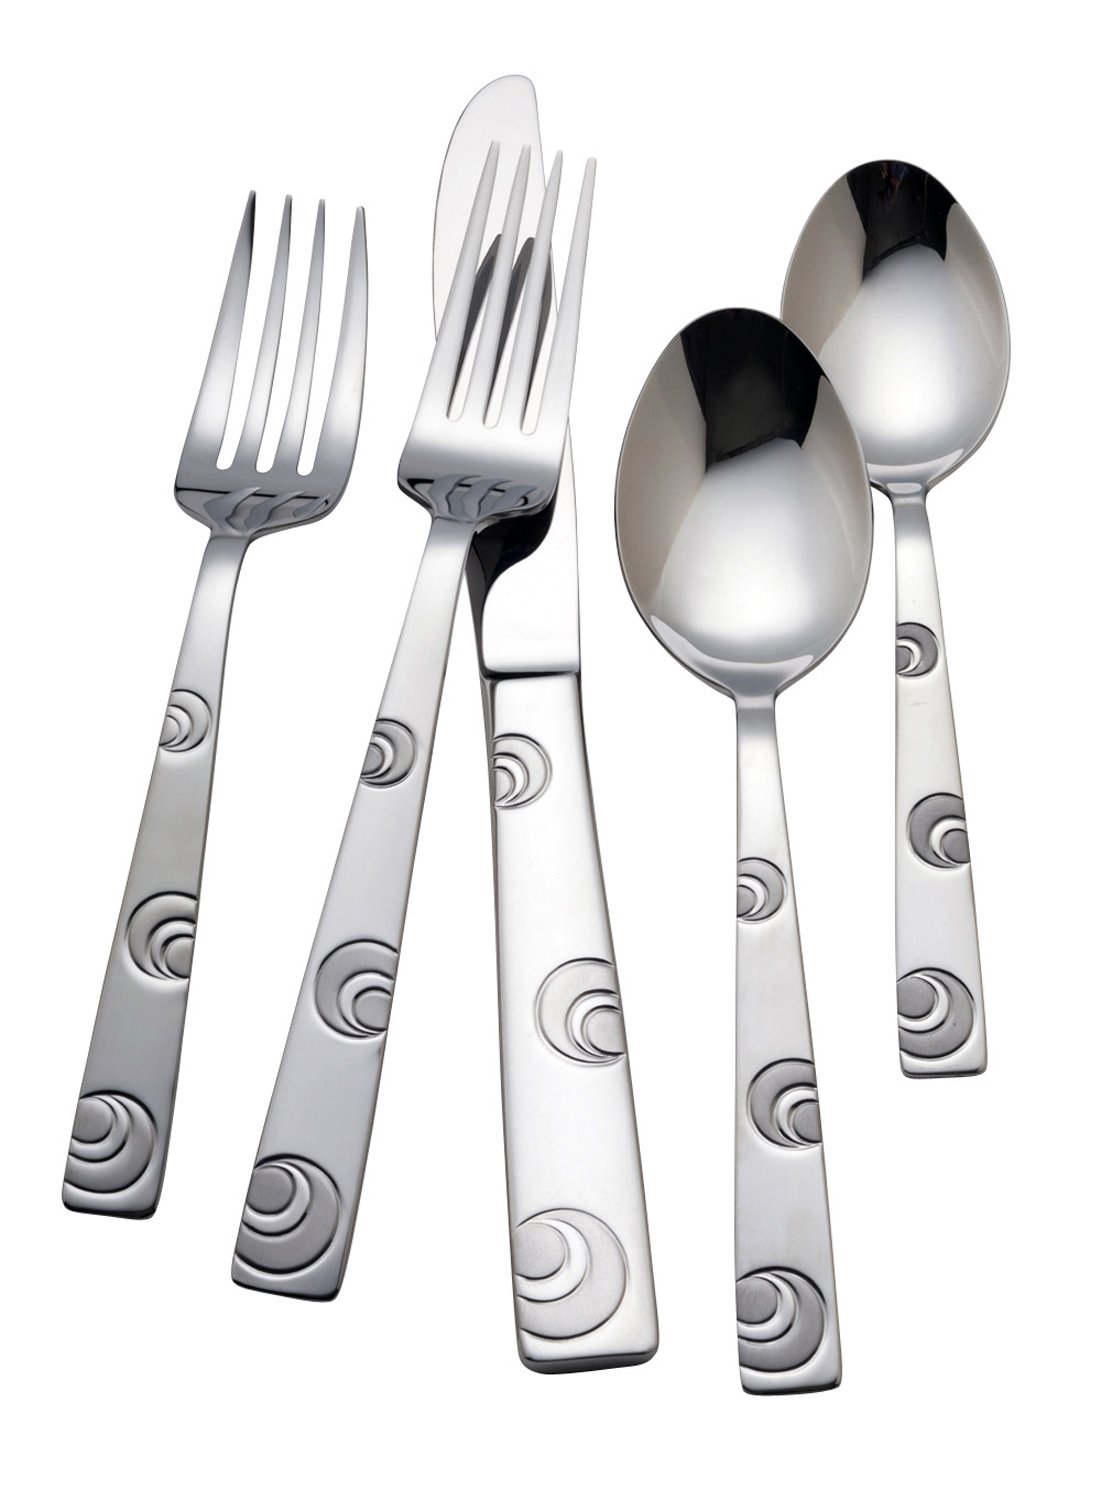 R+B Everyday Omni 18/0 Stainless Steel 45 Piece Flatware Set, Service for 8 ''Discontinued by Manufacturer'' by Reed & Barton